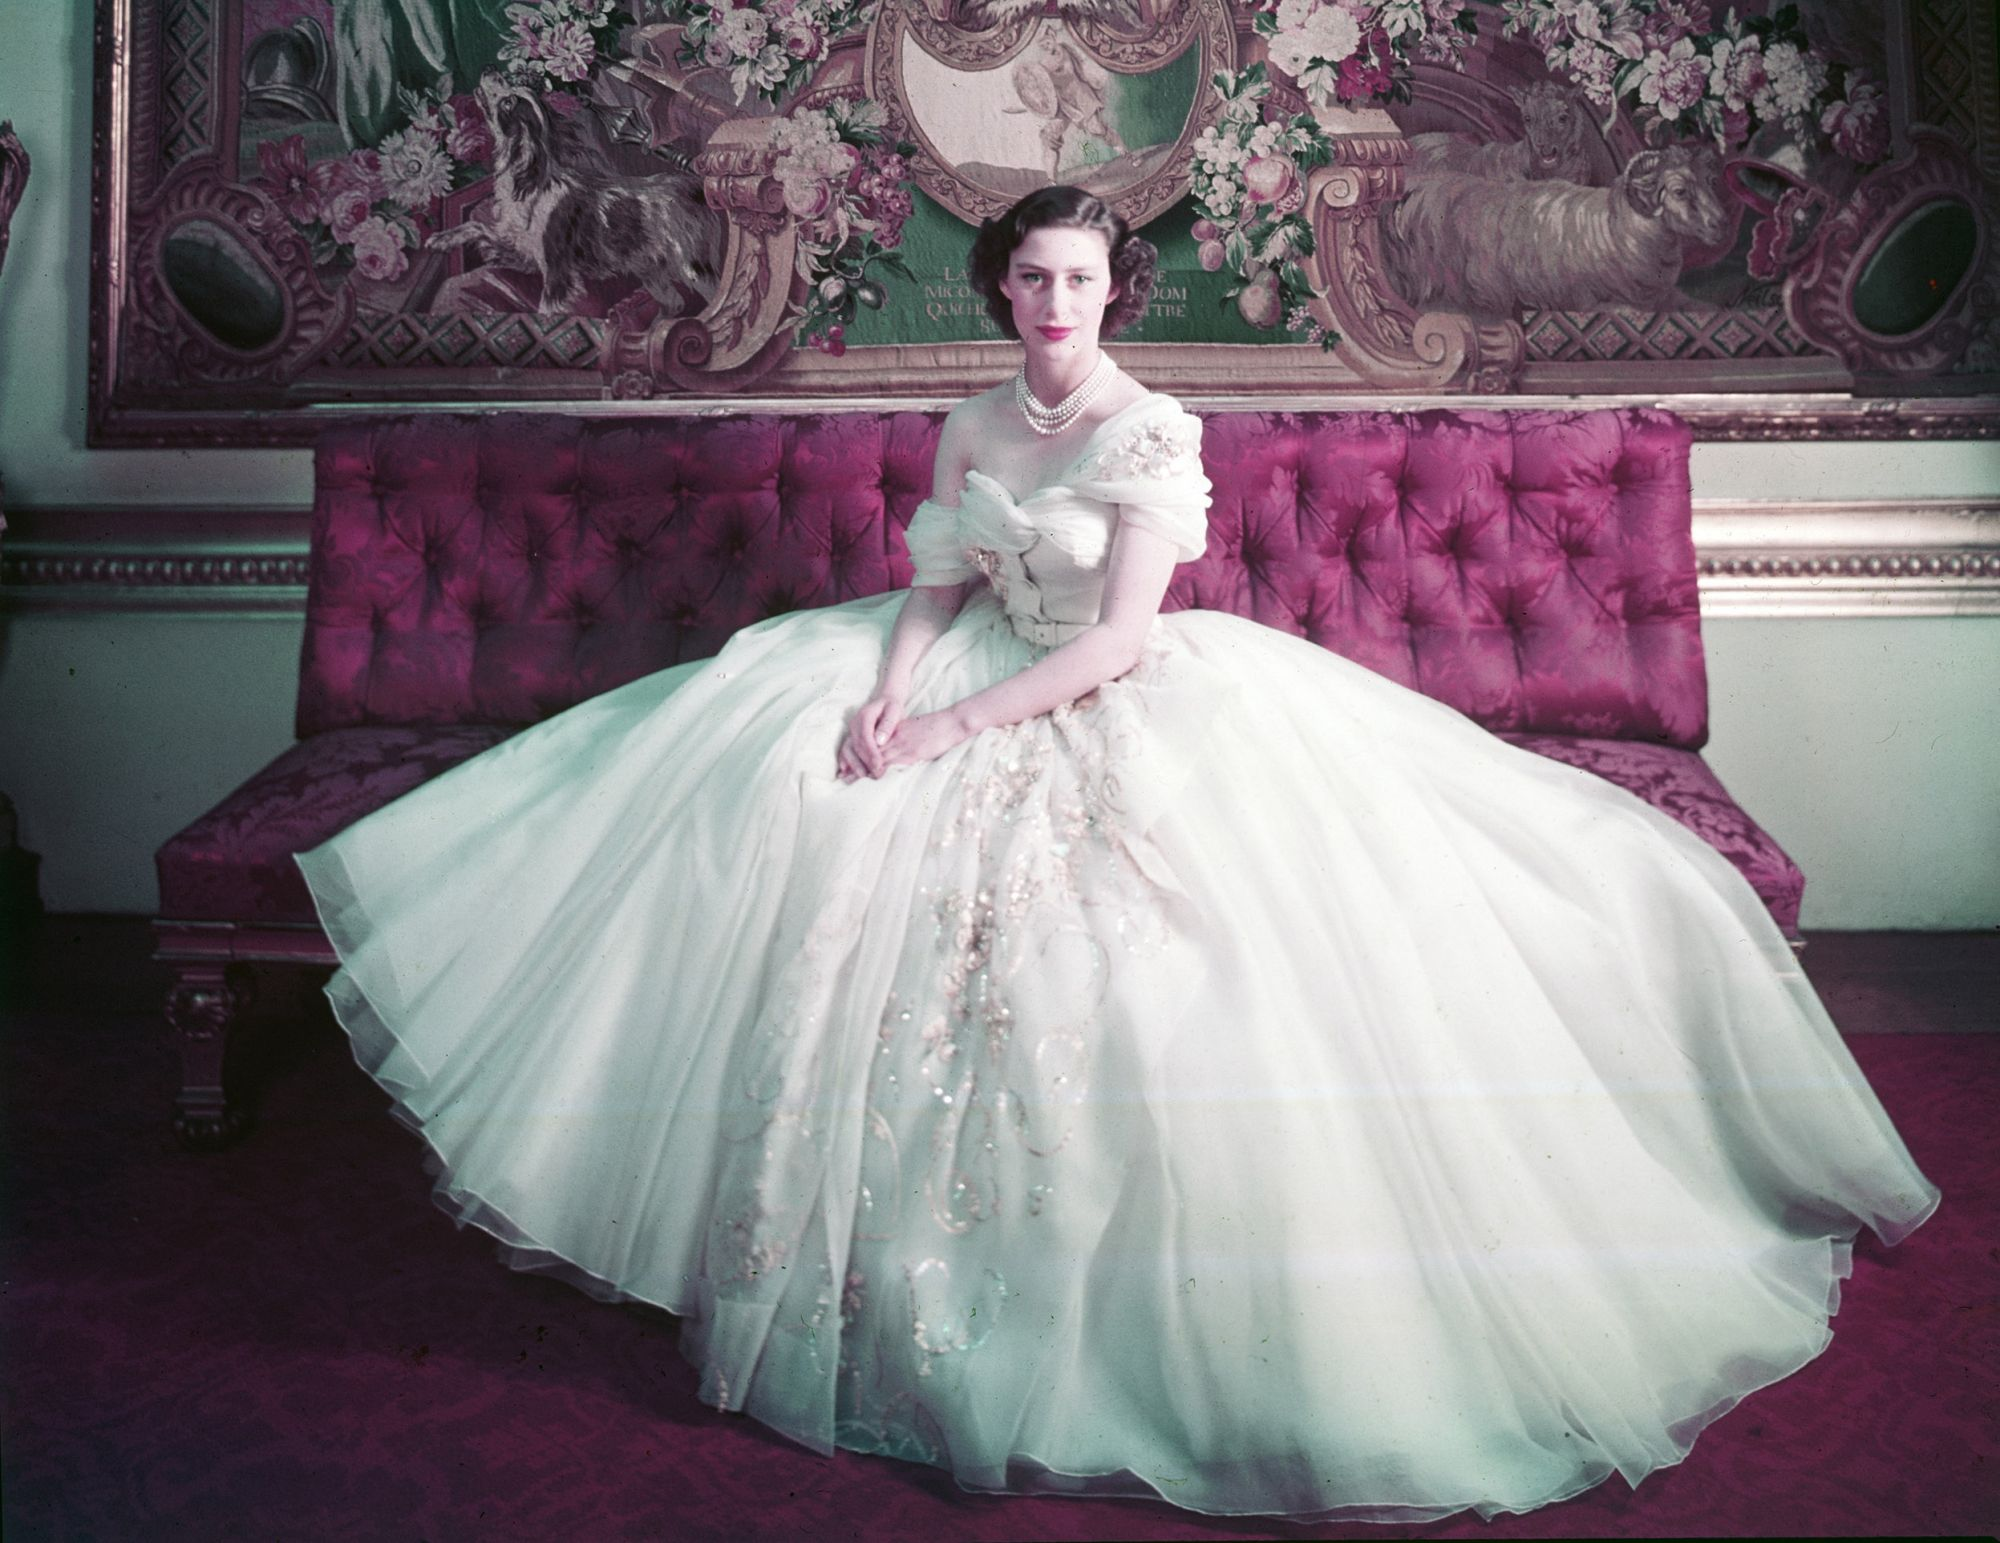 Major Christian Dior Exhibition Set To Open In London